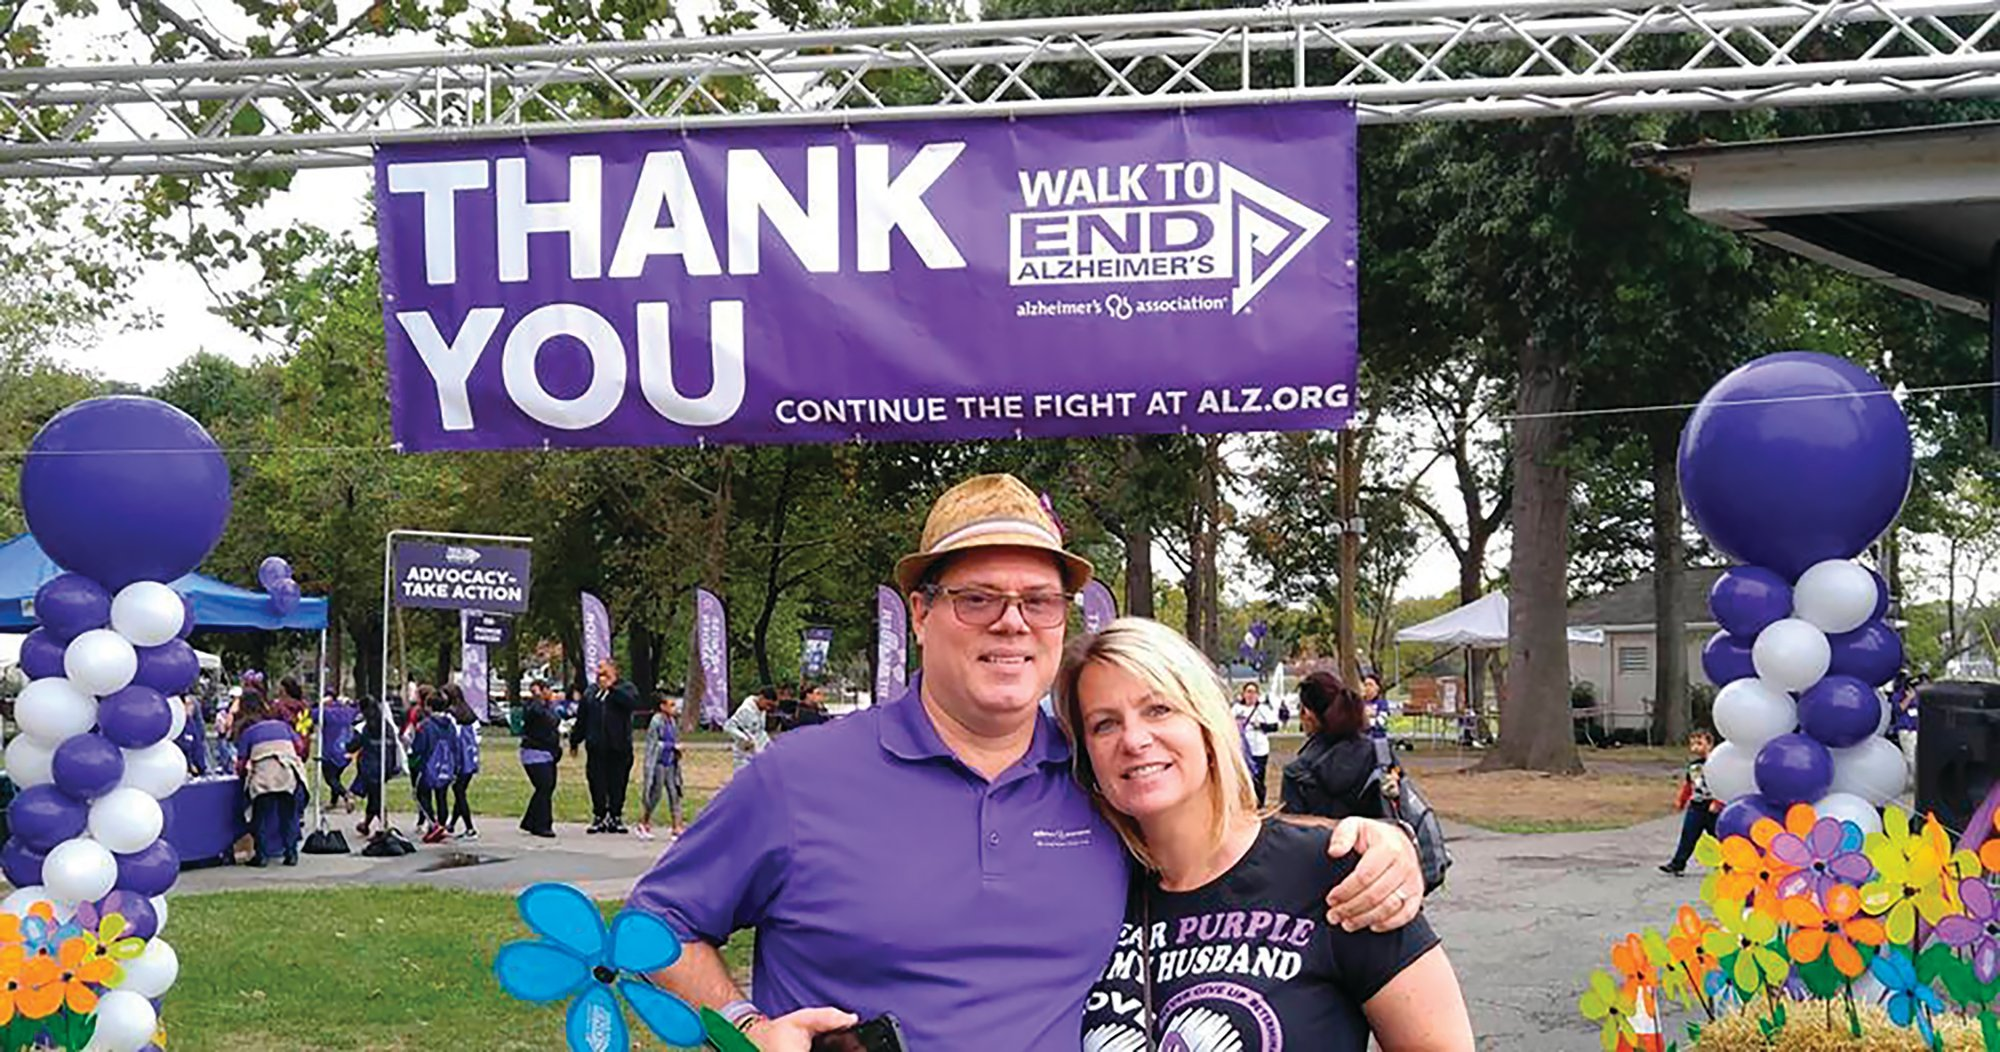 Kim and Jeff Borghoff pose at a fundraising event for the Alzheimer's Association. For Kim and her family, keeping a tradition of Sunday meals helped maintain a sense of normalcy as her husband, Jeff, and his father were simultaneously struggling with Alzheimer's disease.